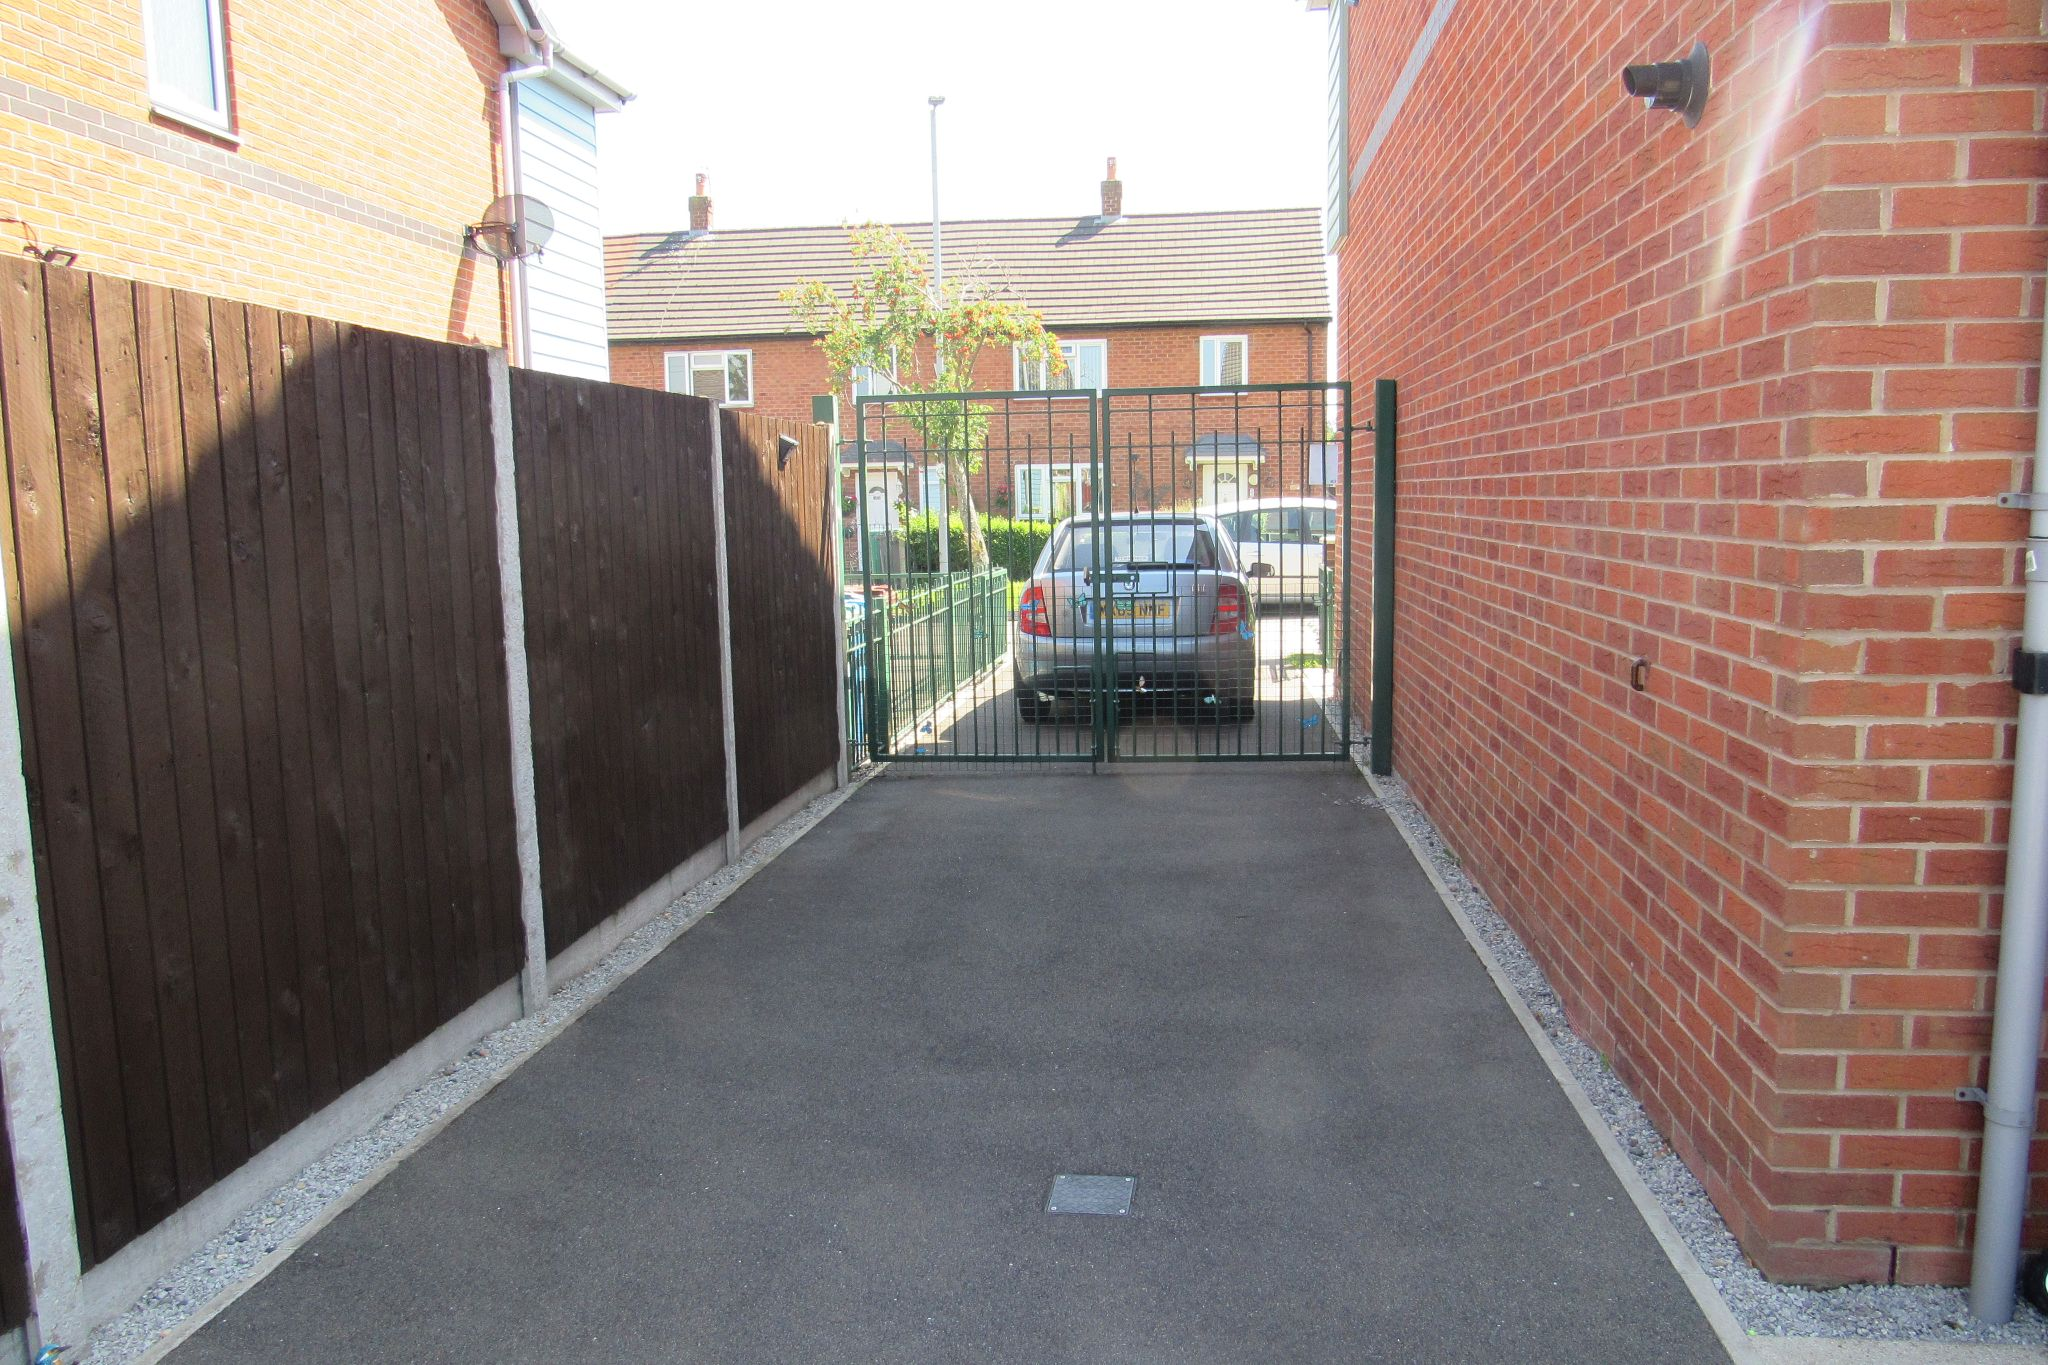 3 bedroom semi-detached house SSTC in Manchester - Photograph 16.